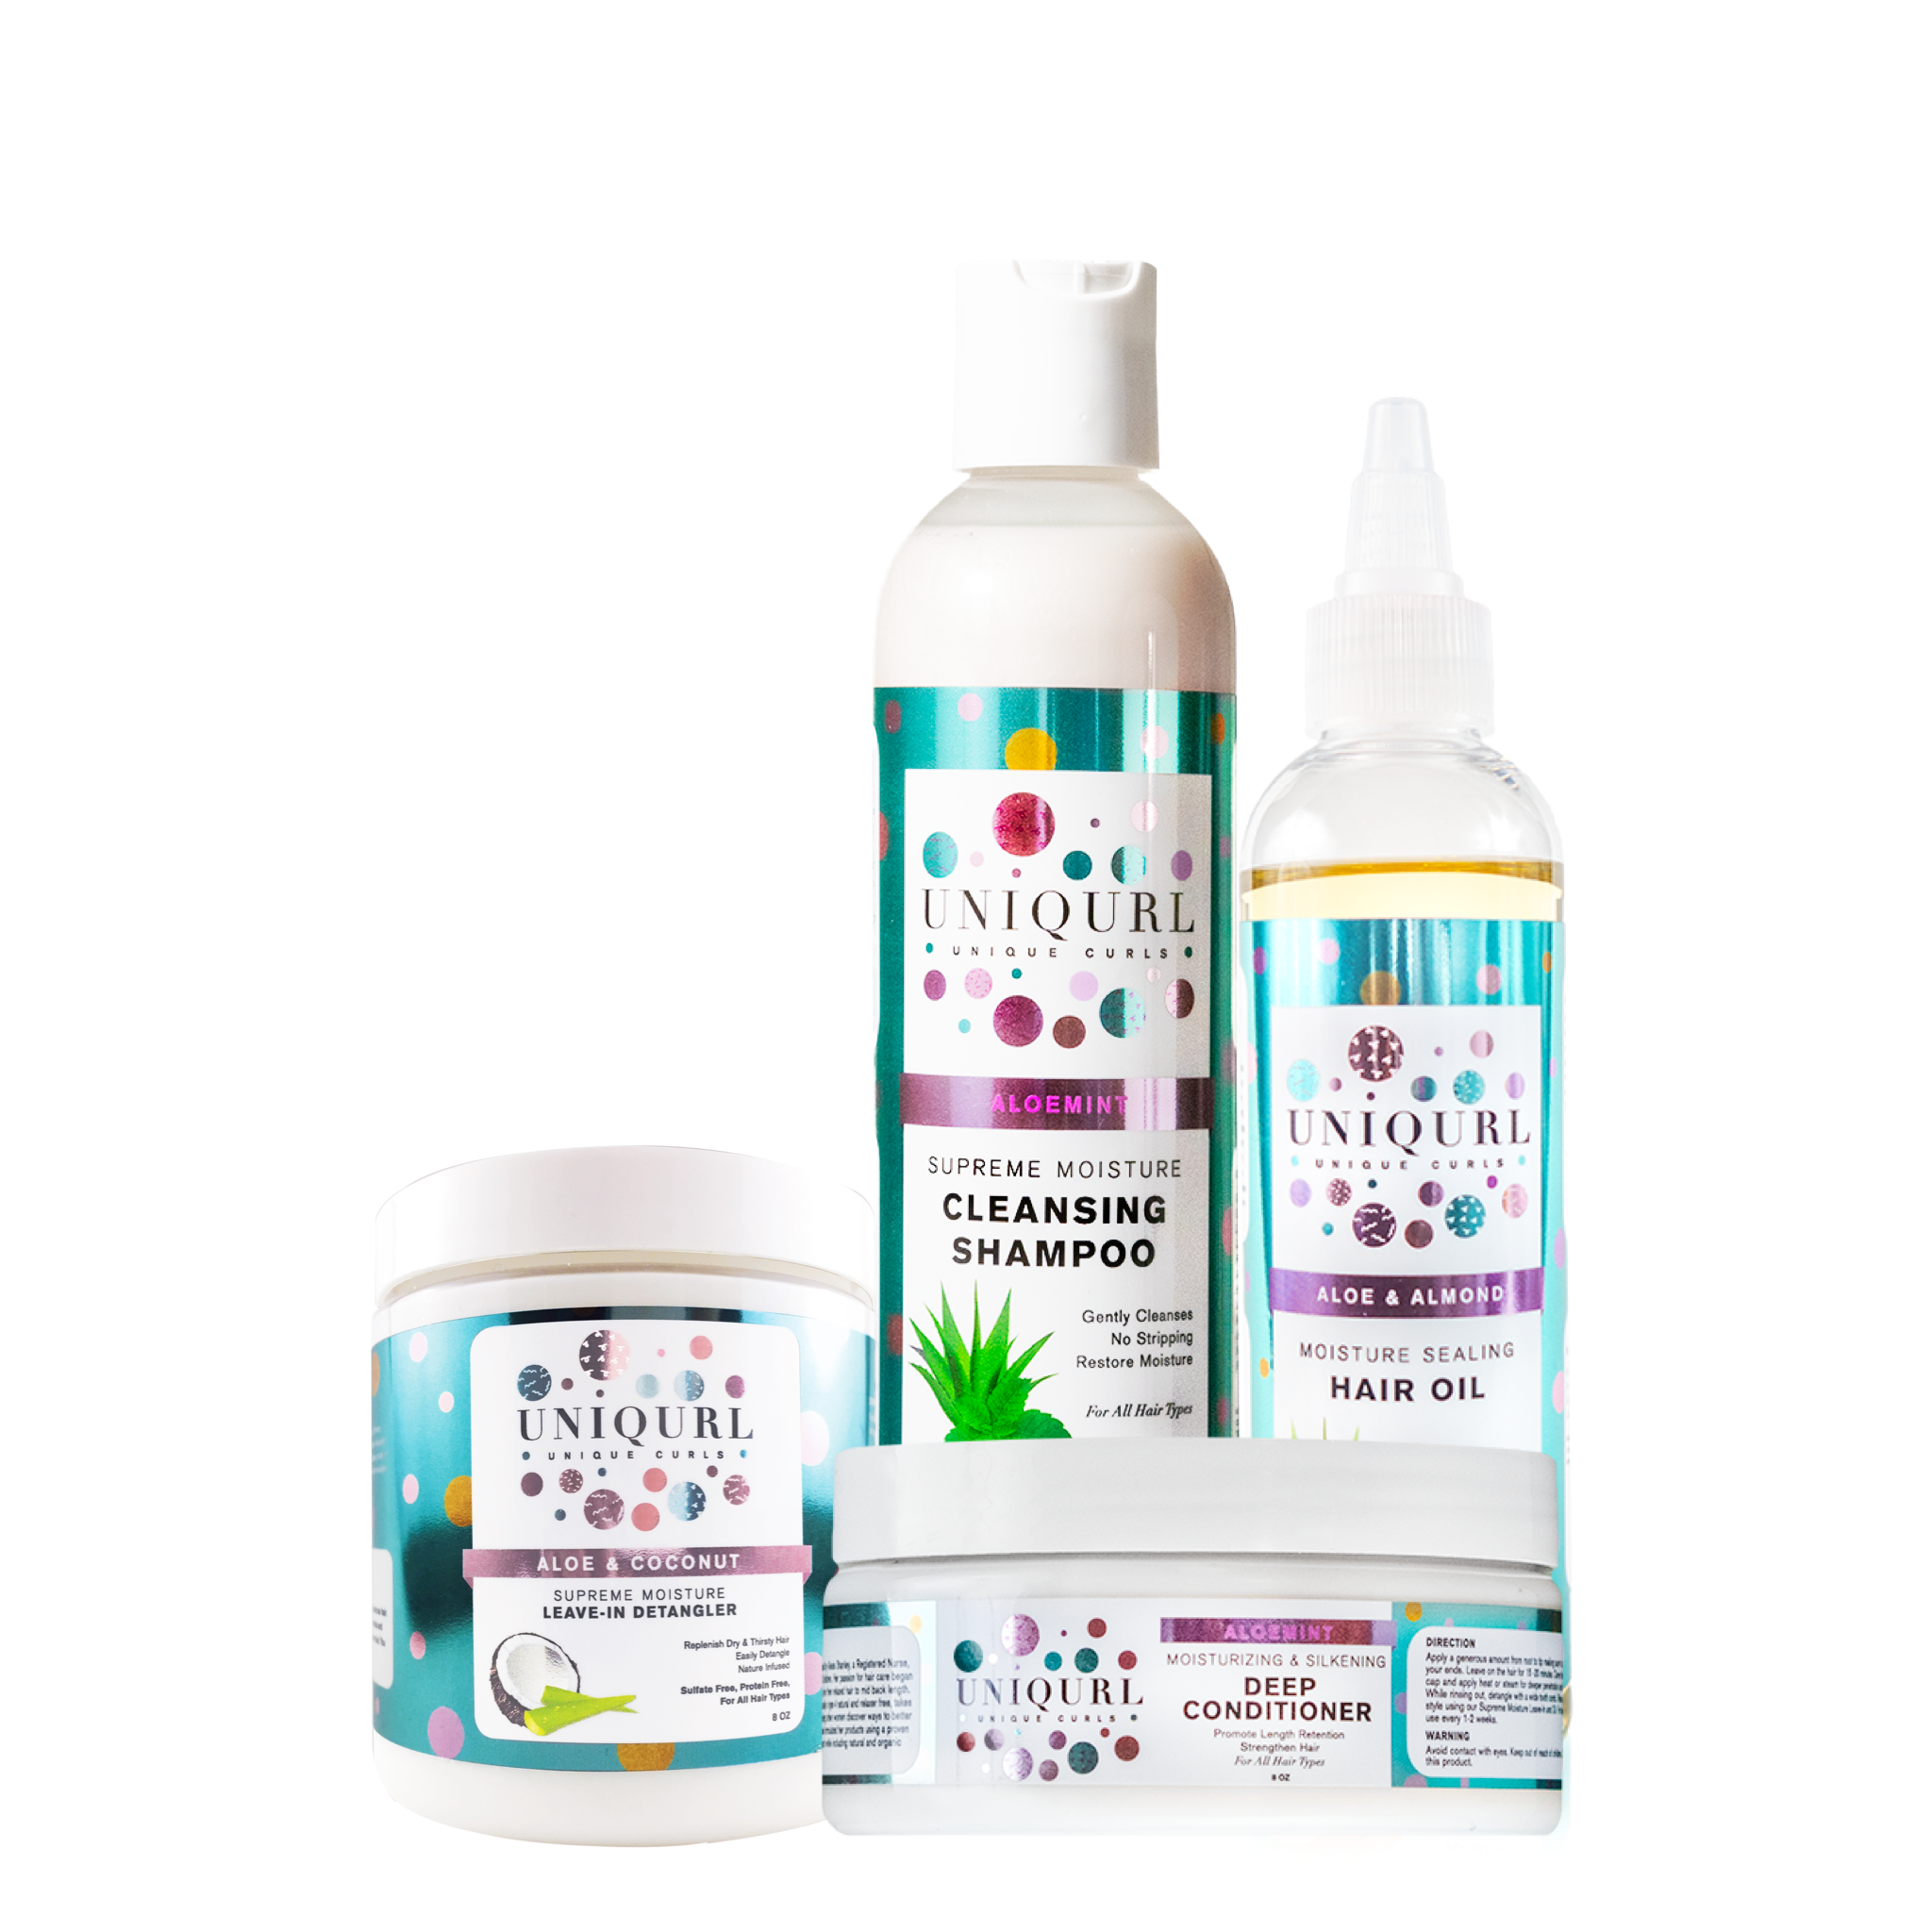 UNIQURL THE ALOE COLLECTION   Ah-mazing! This collection is PERFECT for women who also have children that are natural. I love this for my twins. It is a simple system to use and leaves their hair feeling amazing. The de-tangling styler is perfection.   SAVE $10 ON THIS COLLECTION TODAY! OFFER EXPIRES 24 HOURS AFTER WEBINAR.     CLICK TO SHOP